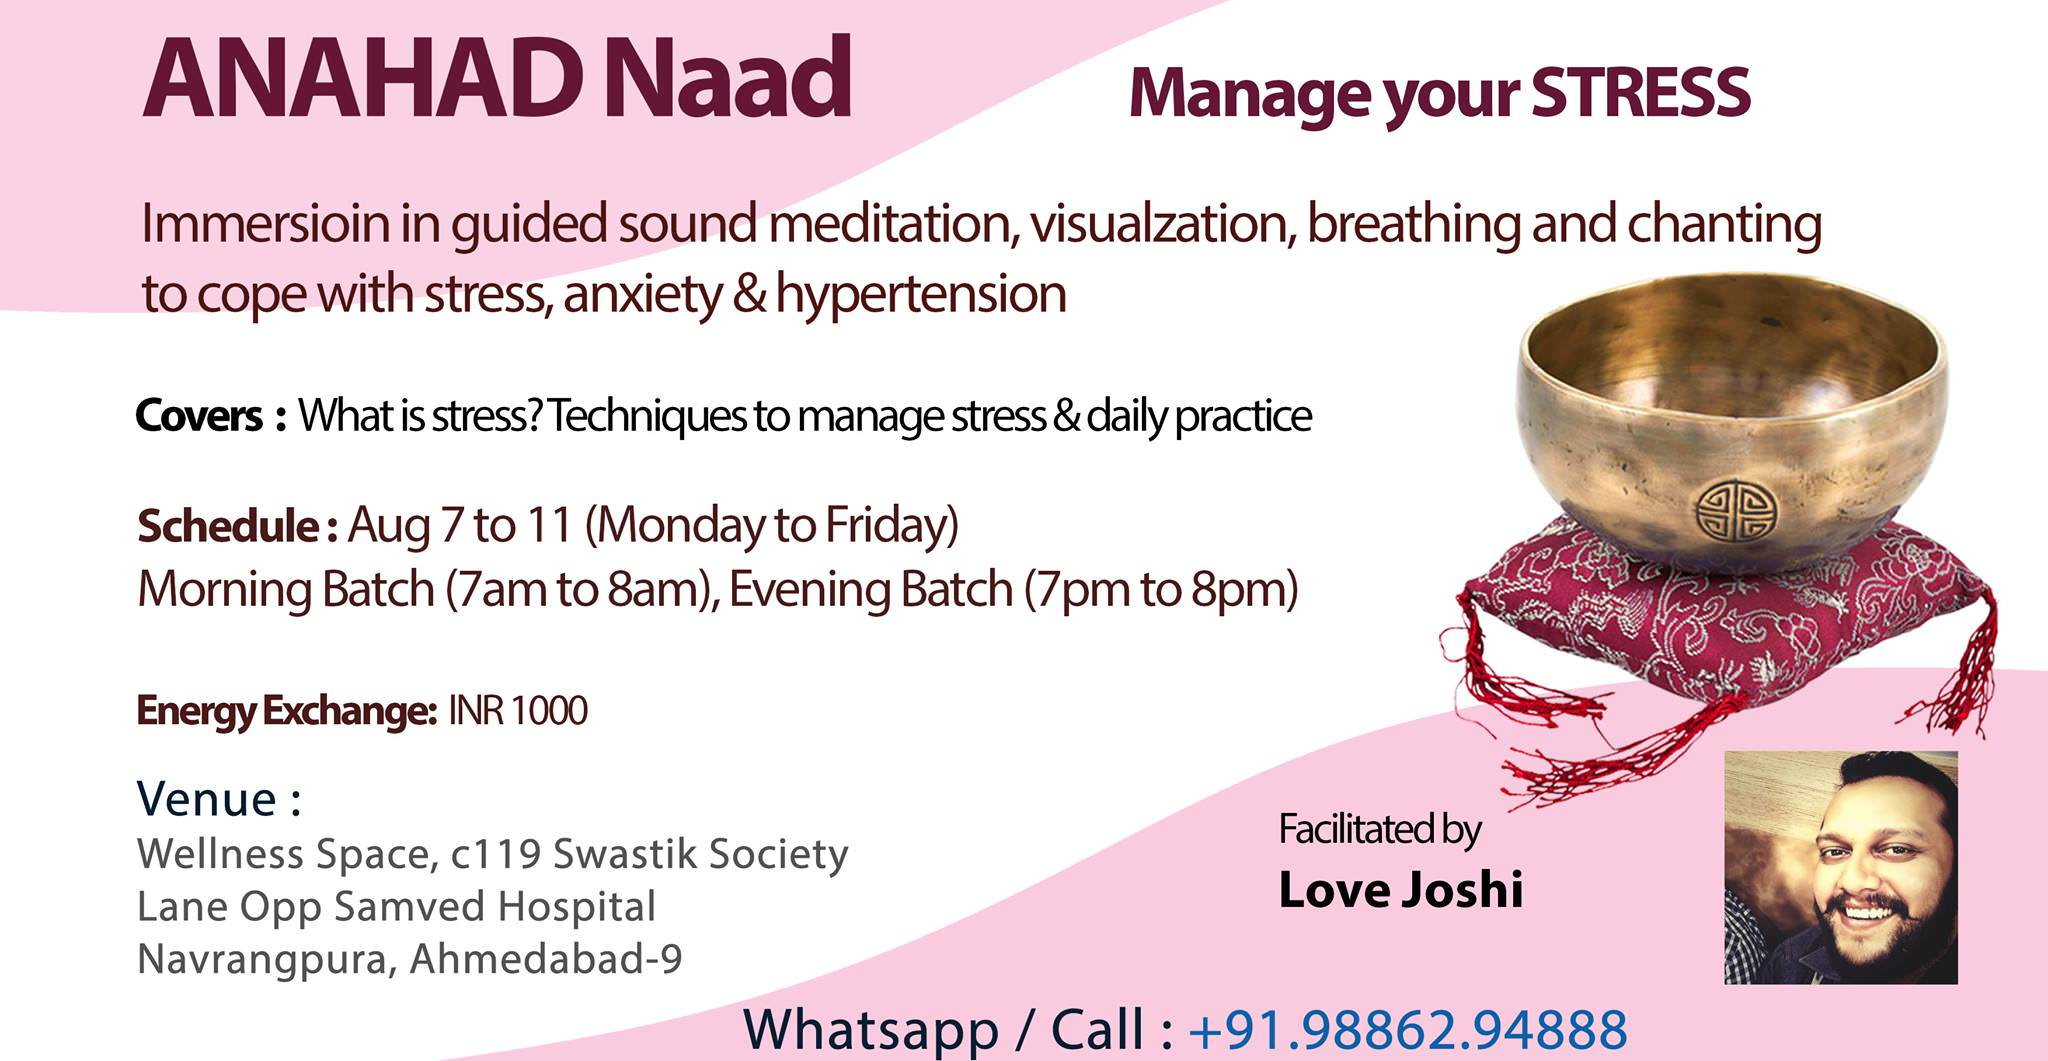 Manage Your Stress Anahad Naad Aug 7 11 Abad